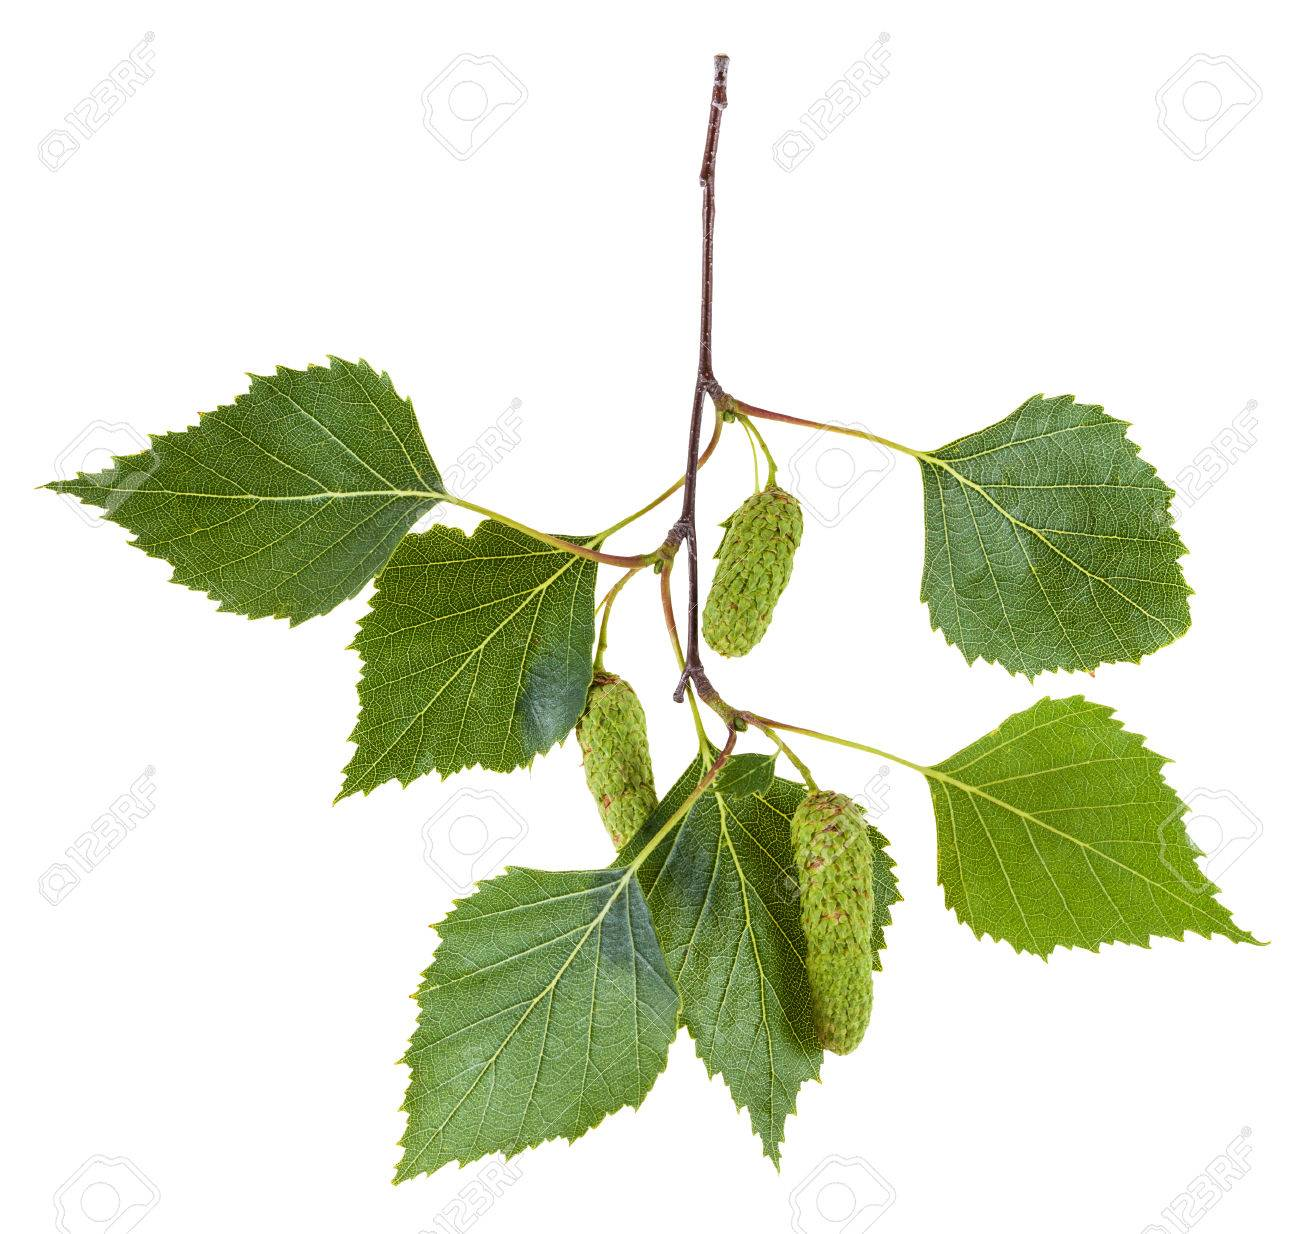 branch of birch tree (Betula pendula, silver birch ,warty birch, European white birch) with green leaves and catkins isolated on white background - 58811532